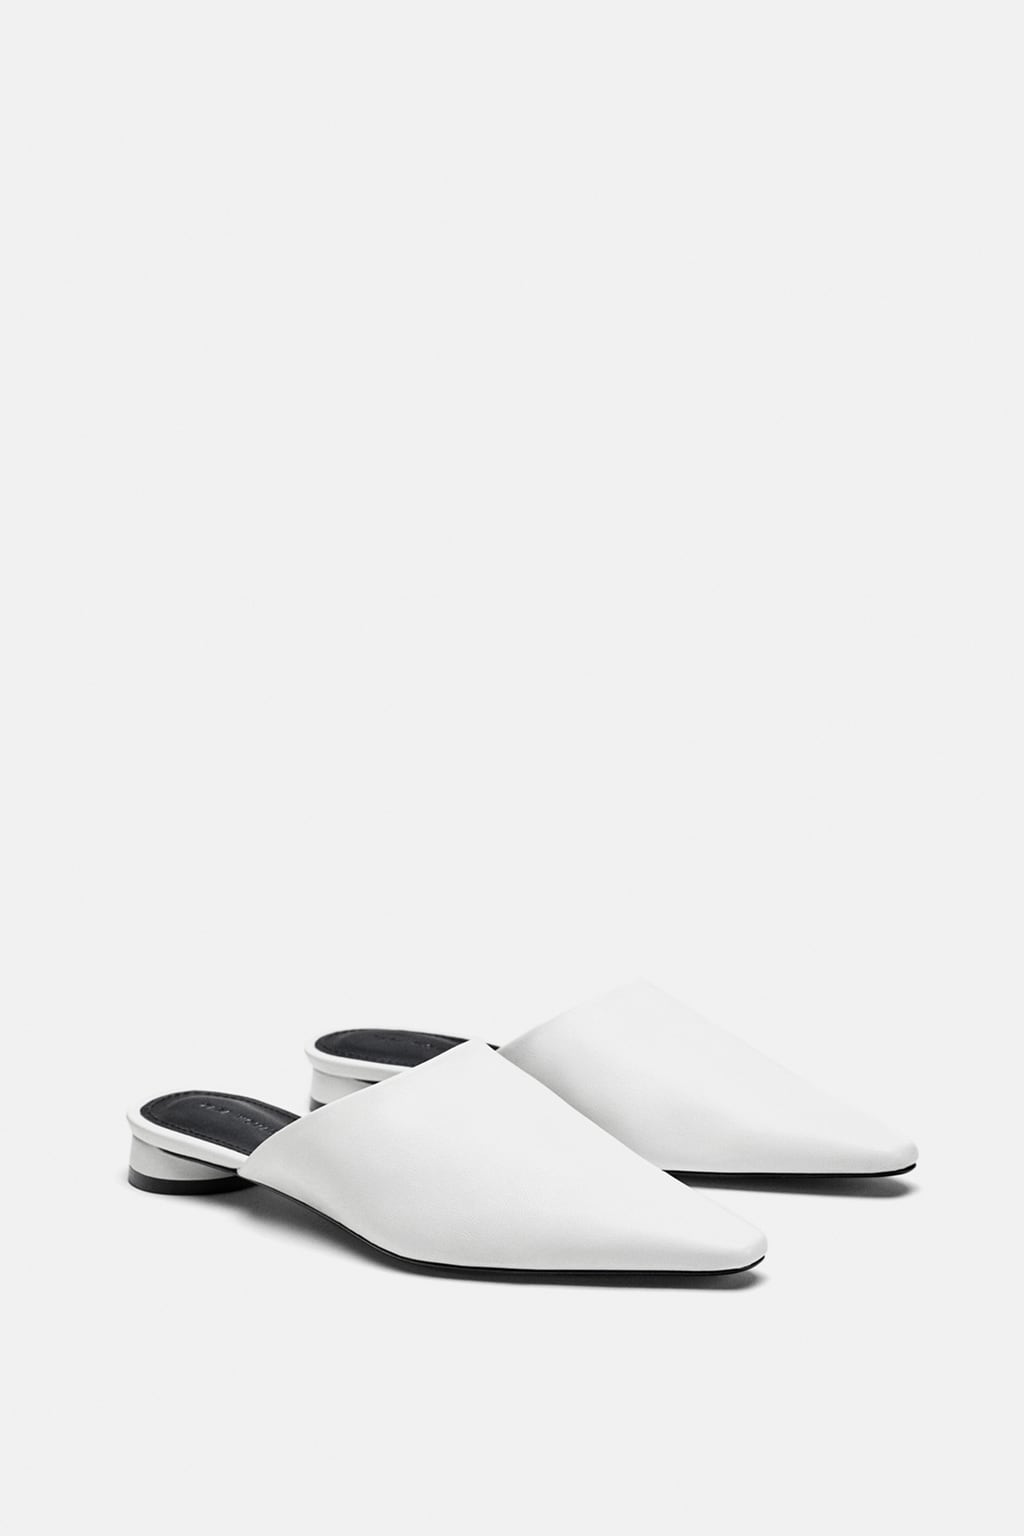 Leather Mules - £19.99